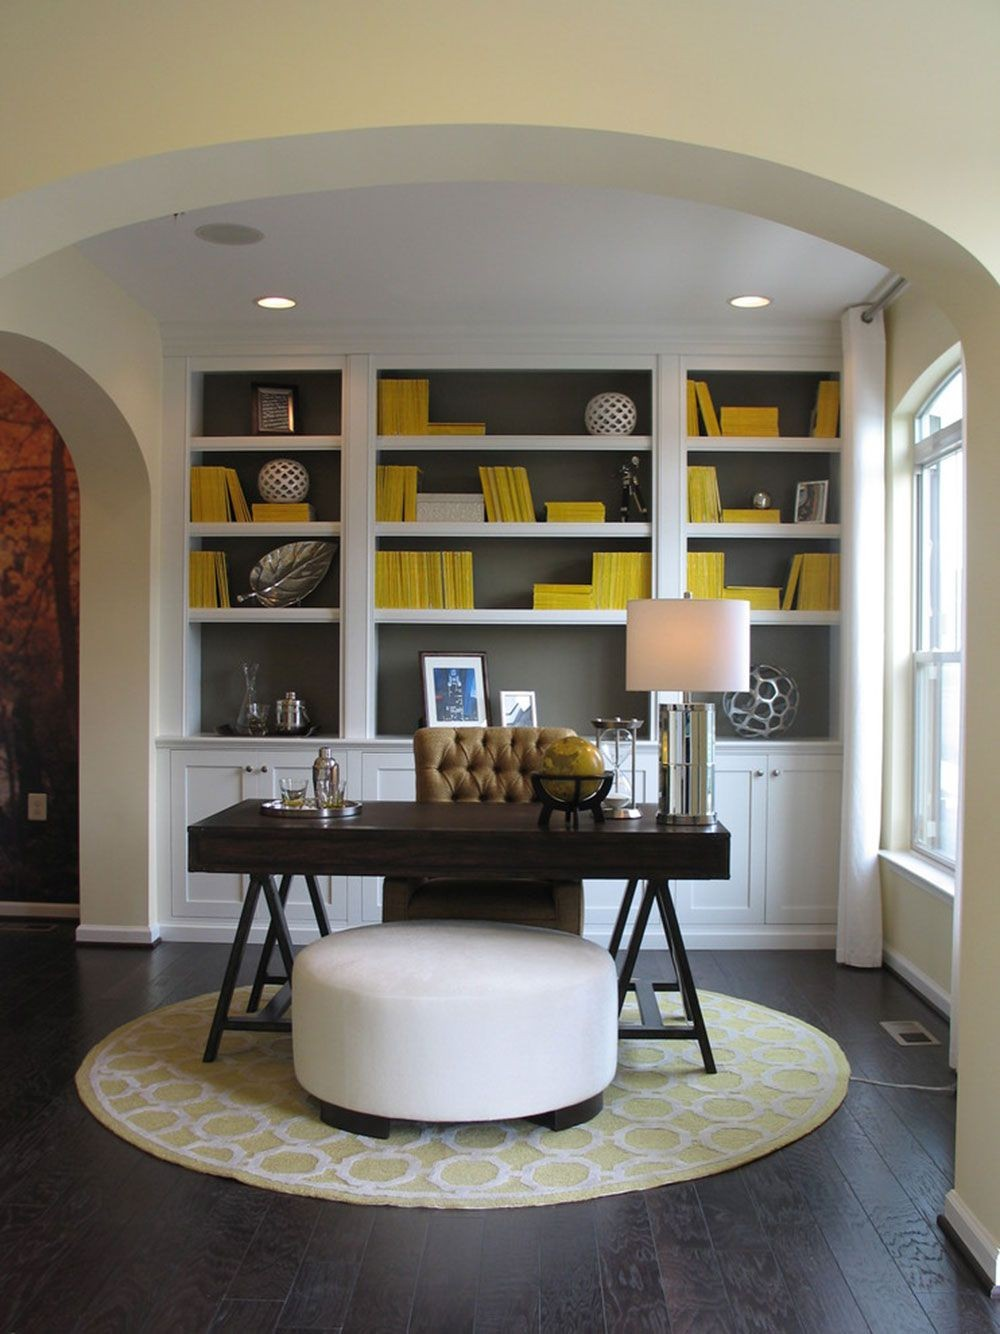 18 Awe-Inspiring Home Office Designs full of Colors and Textures 10